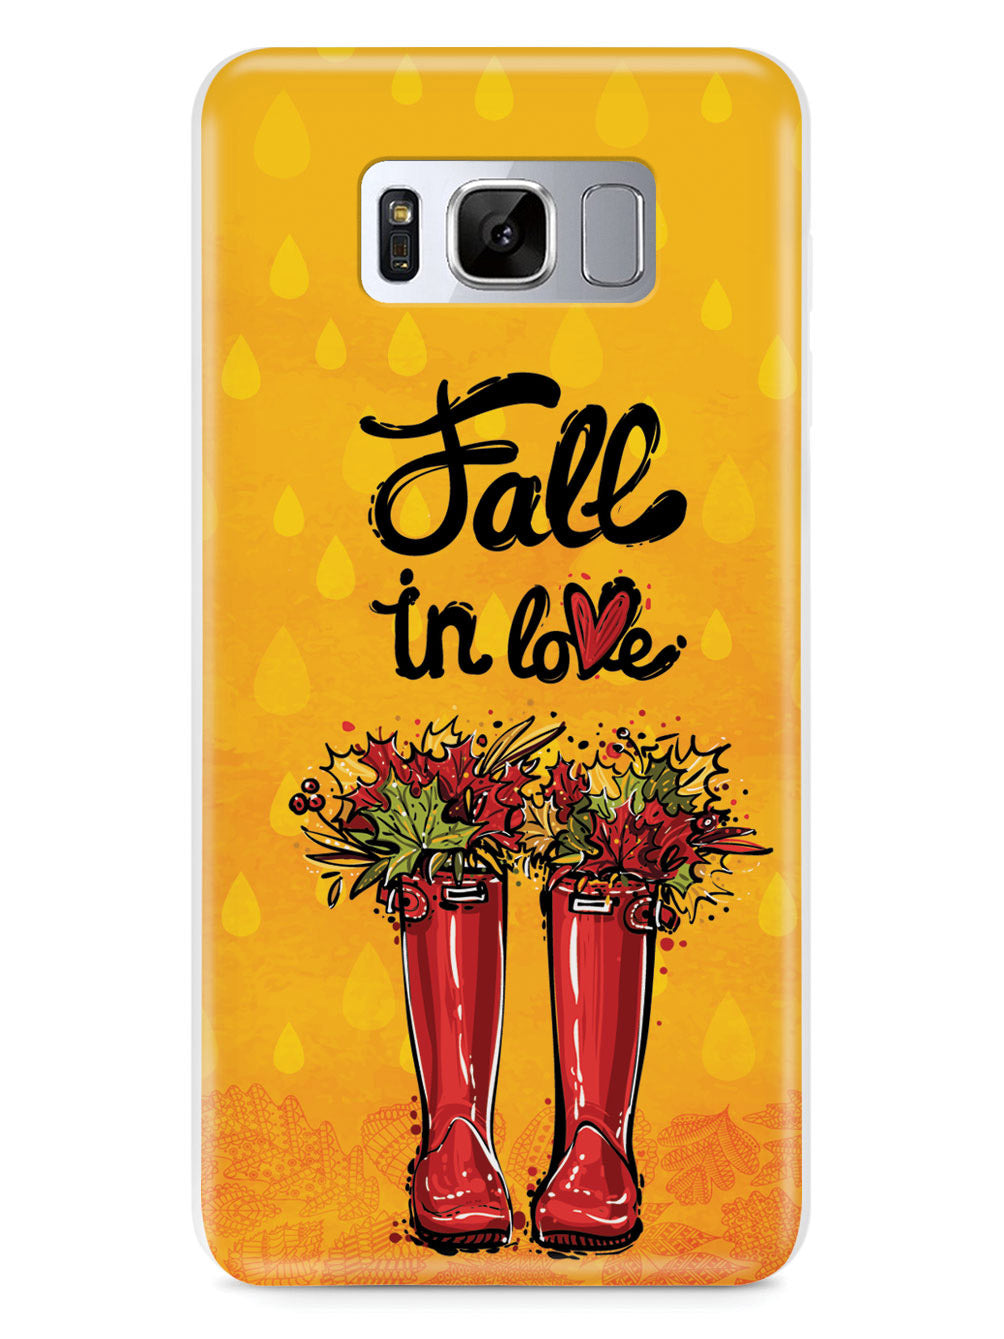 Fall in Love - Autumn Case